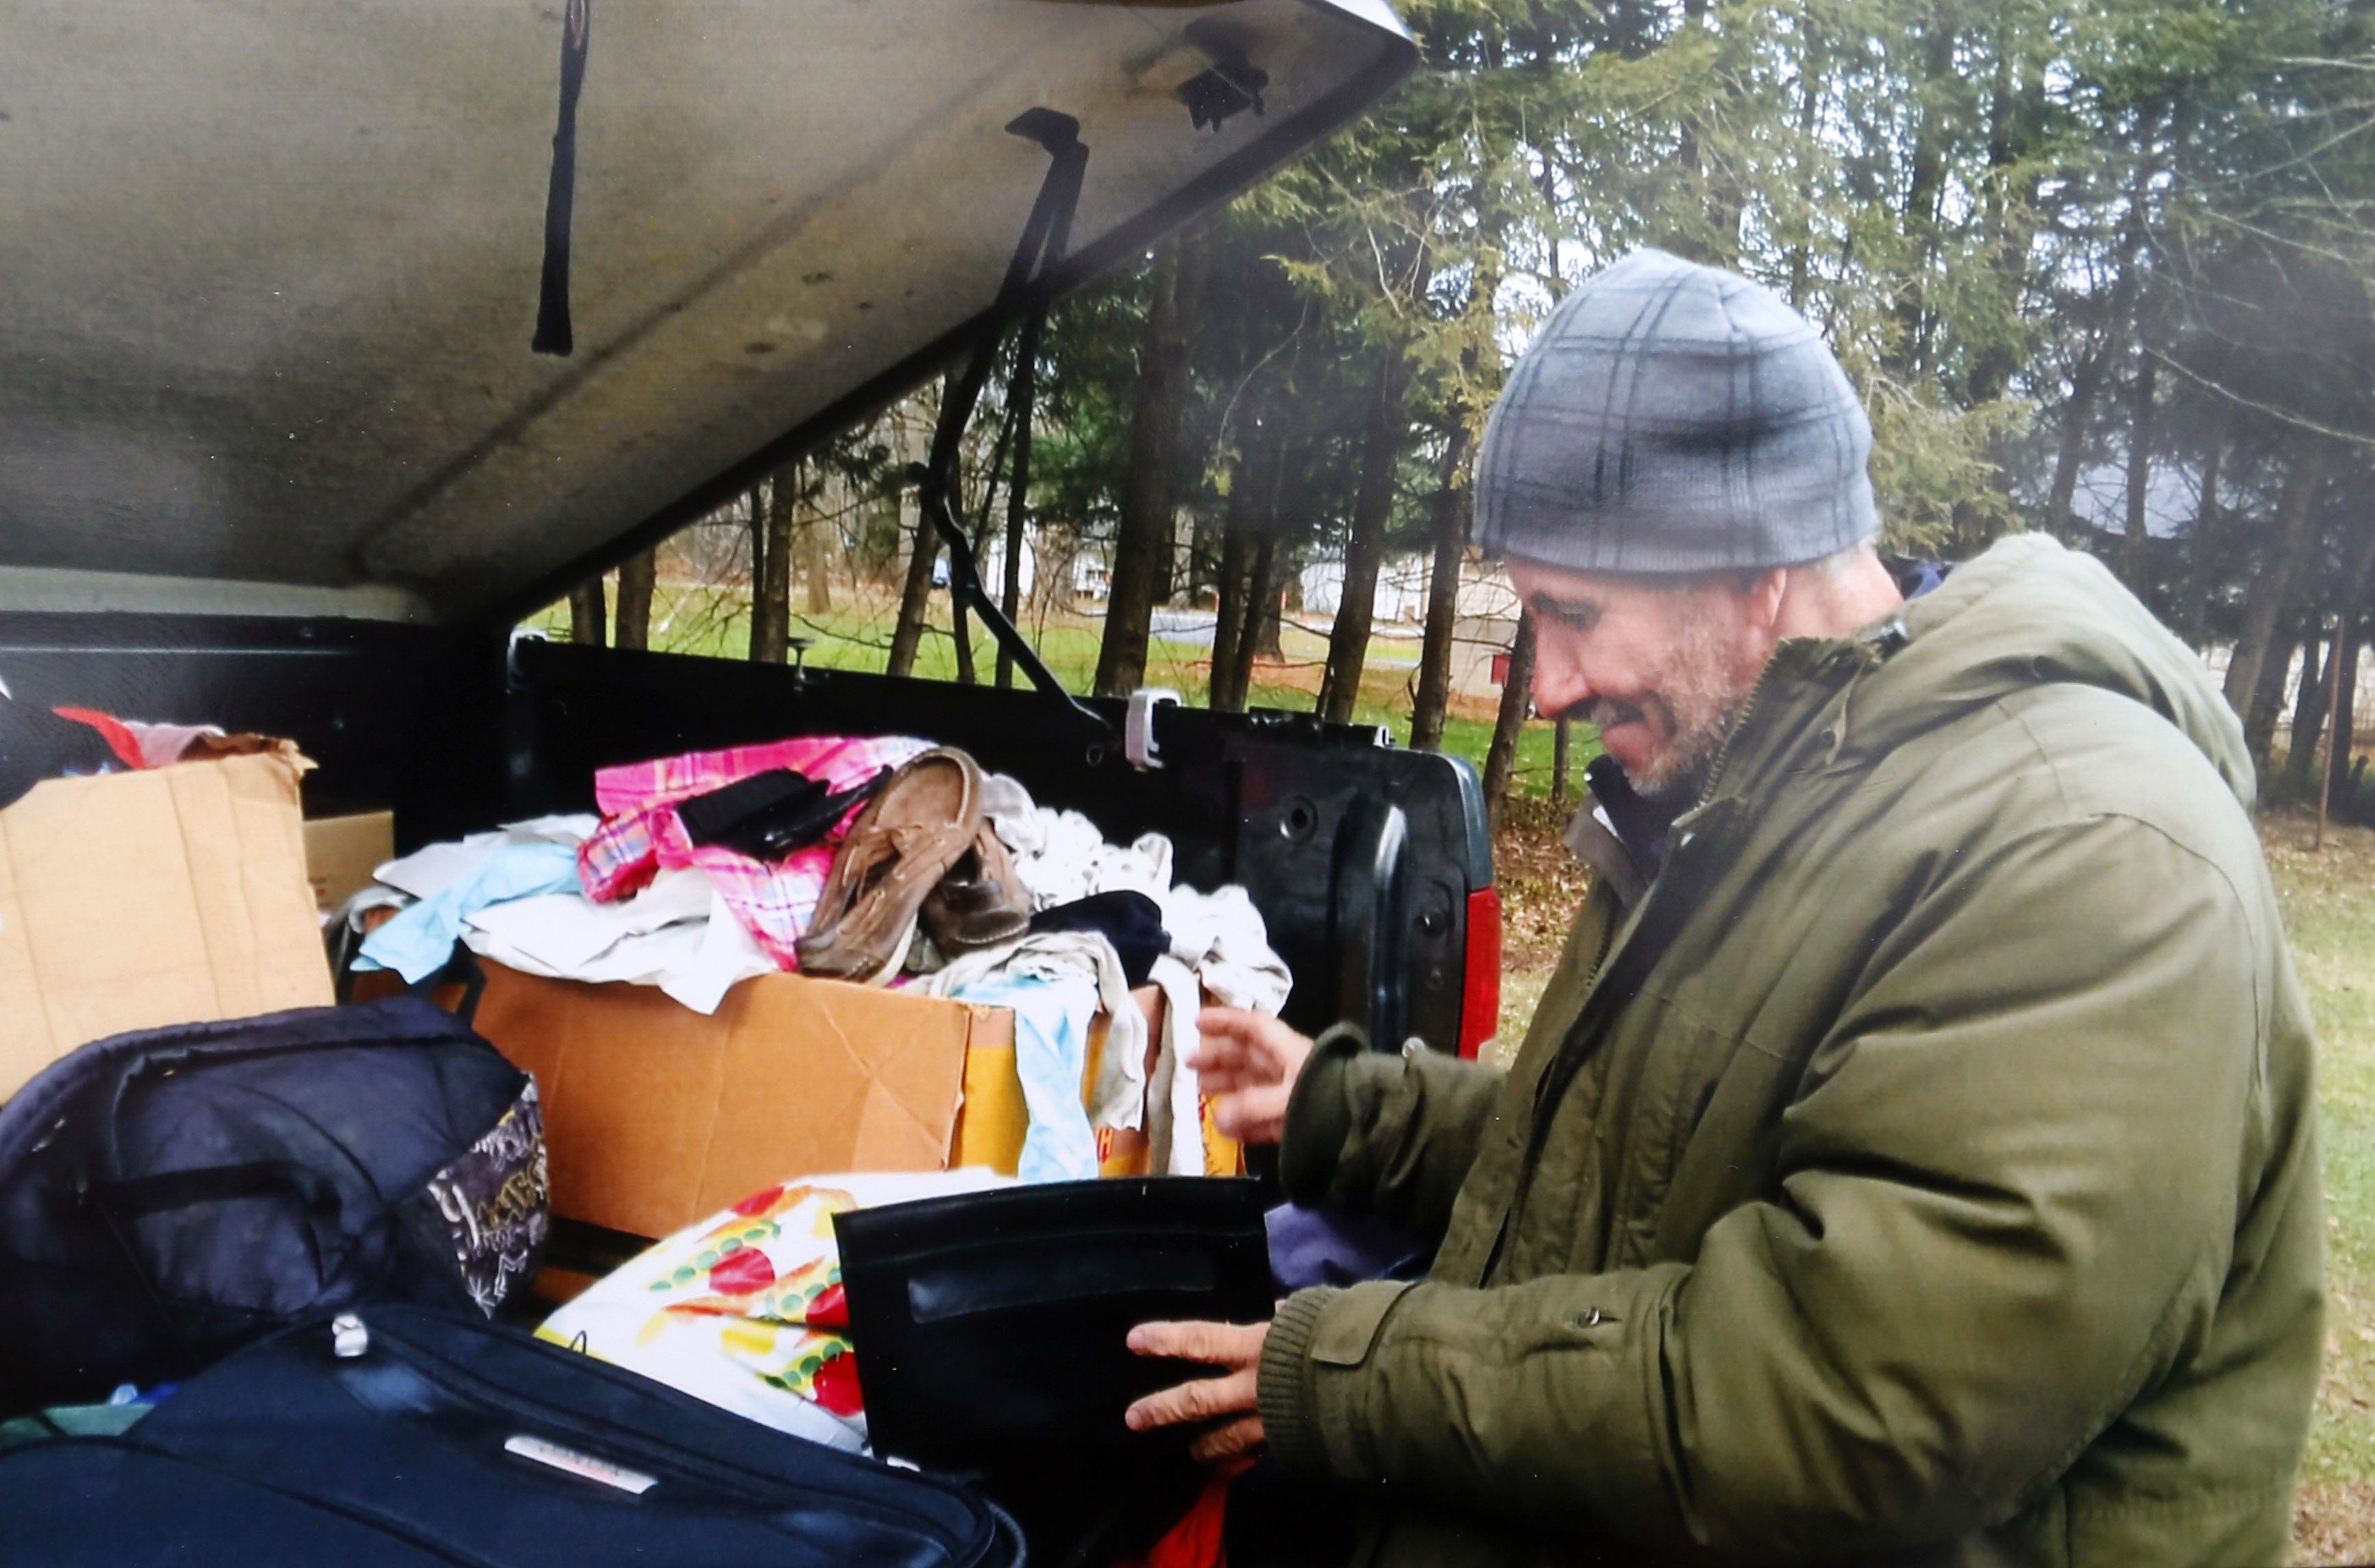 A photo of a homeless man, Jose Duren Matus, who was helped by Betsy Goinski in December after he became stranded in Elma, N.Y., while enroute to New York City.           (Mark Mulville / The Buffalo News)